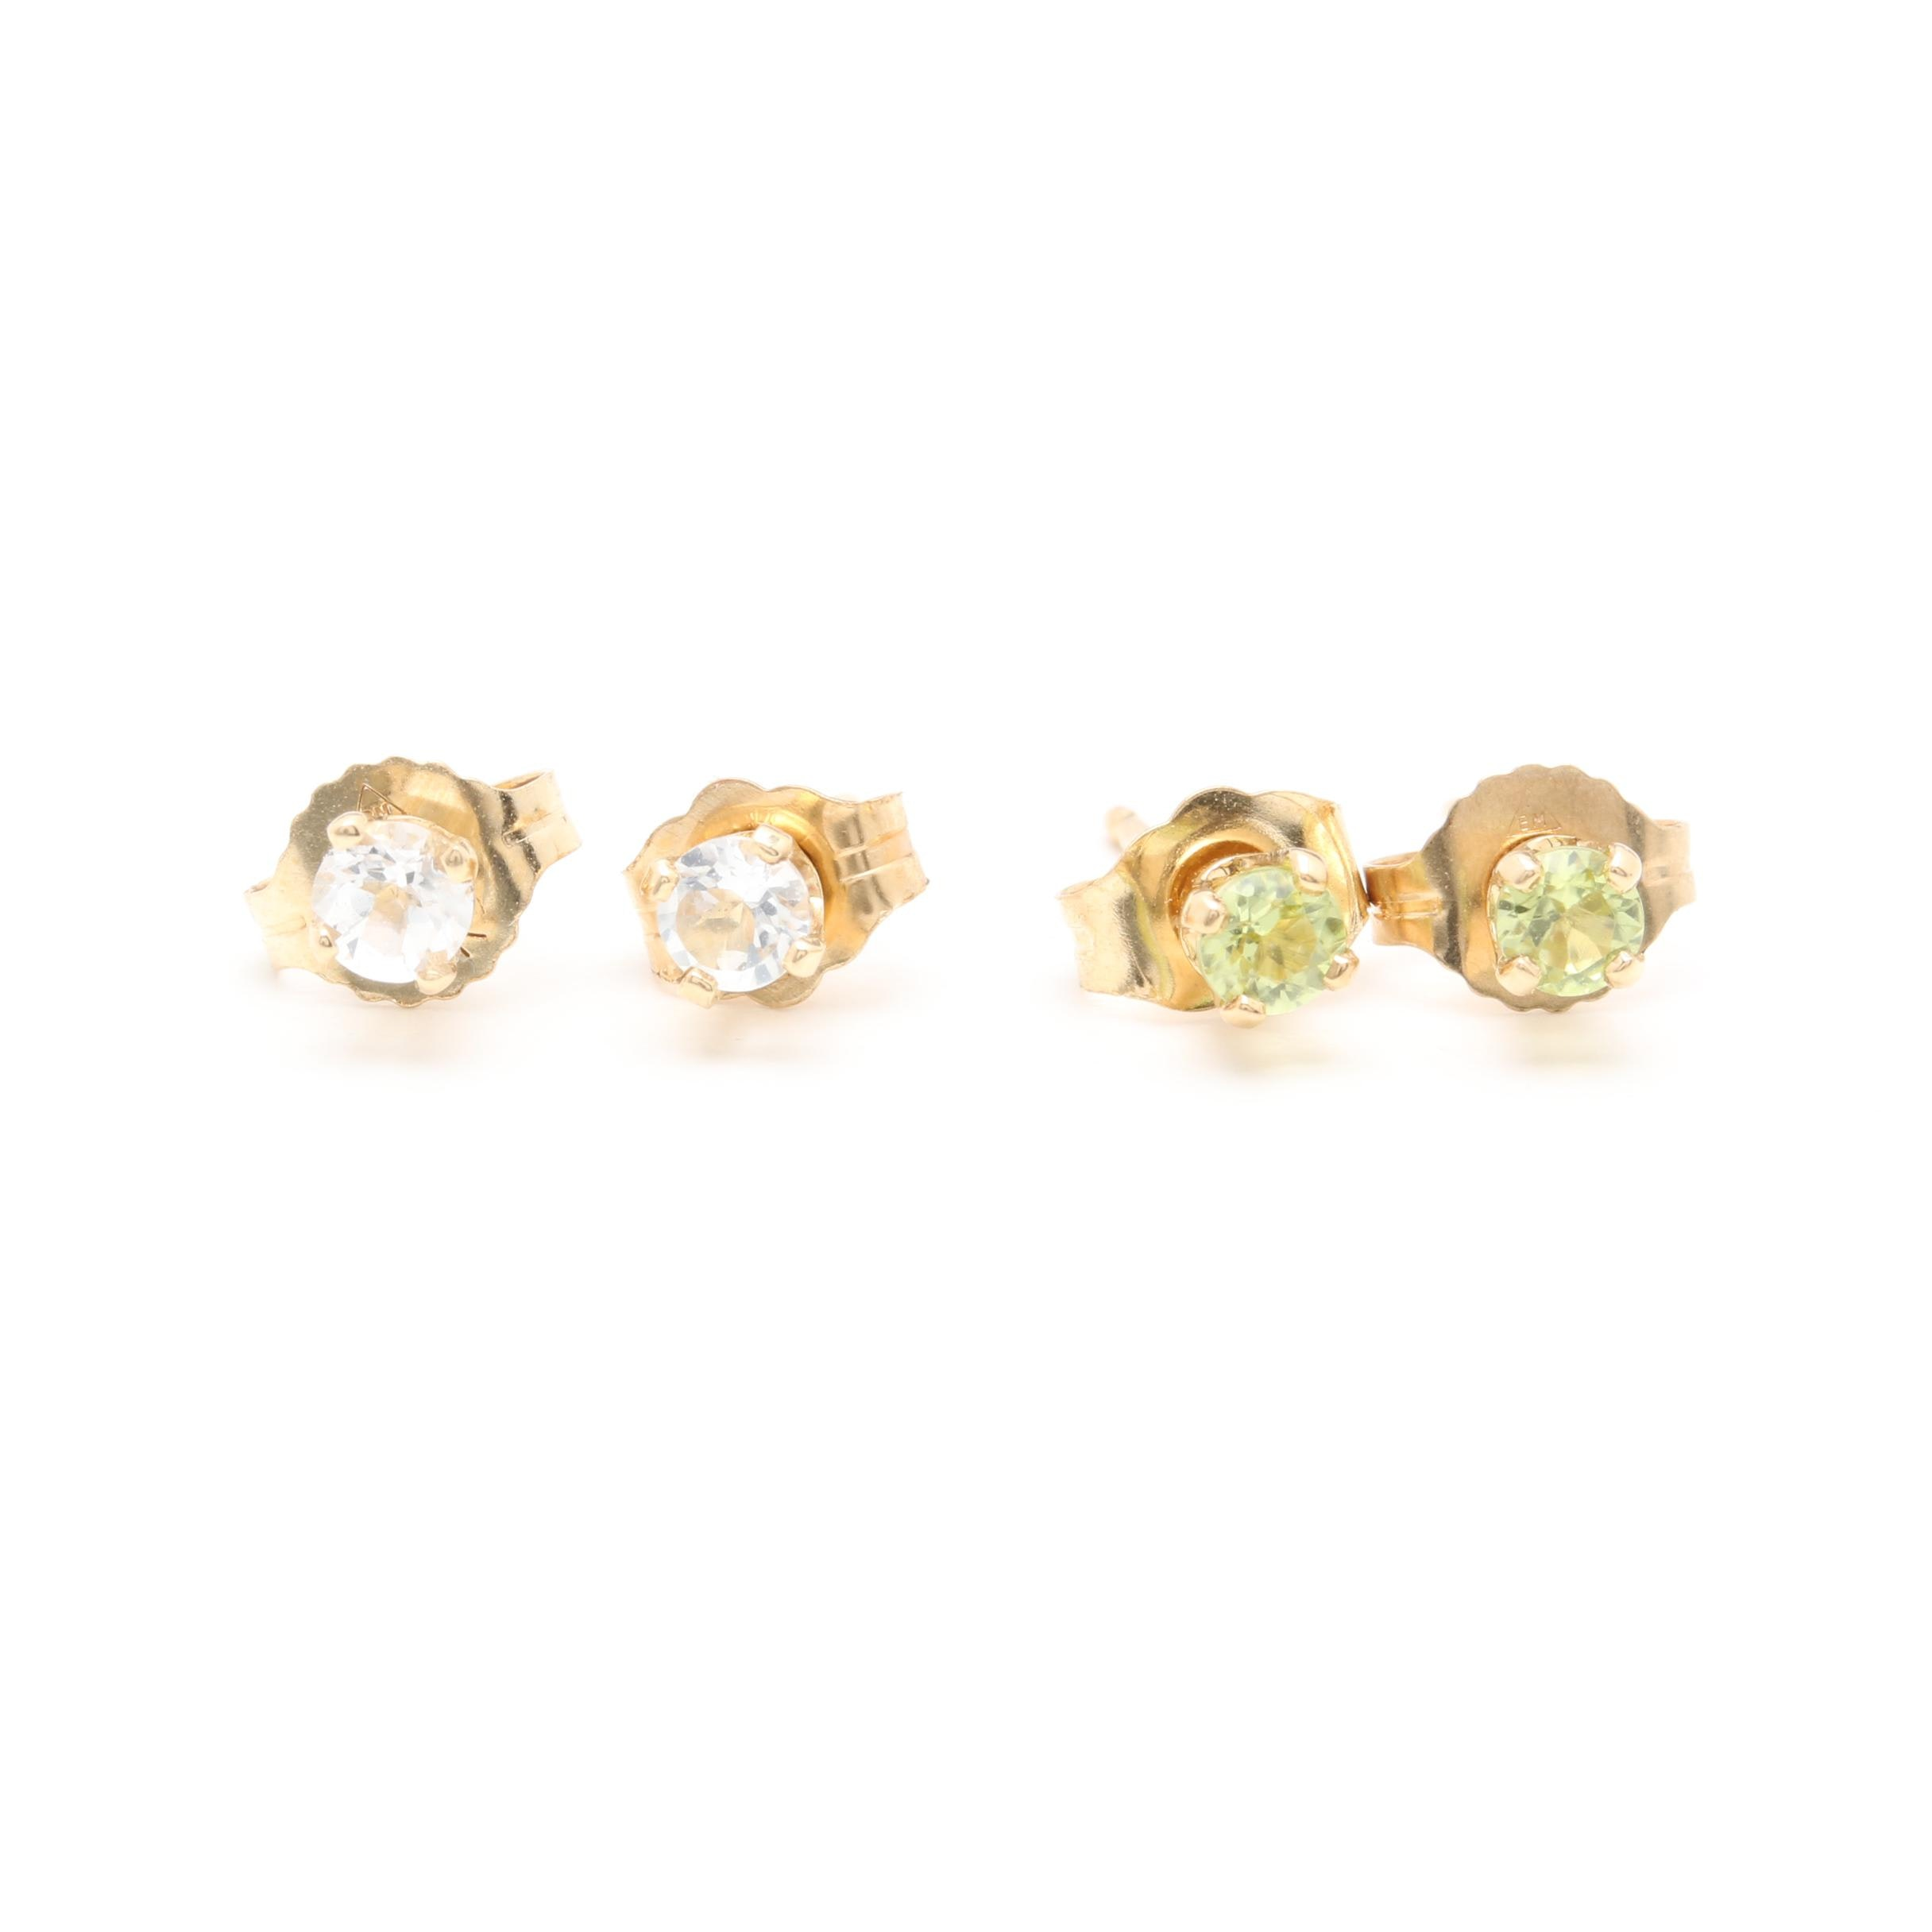 14K Yellow Gold Citrine and White Sapphire Stud Earrings